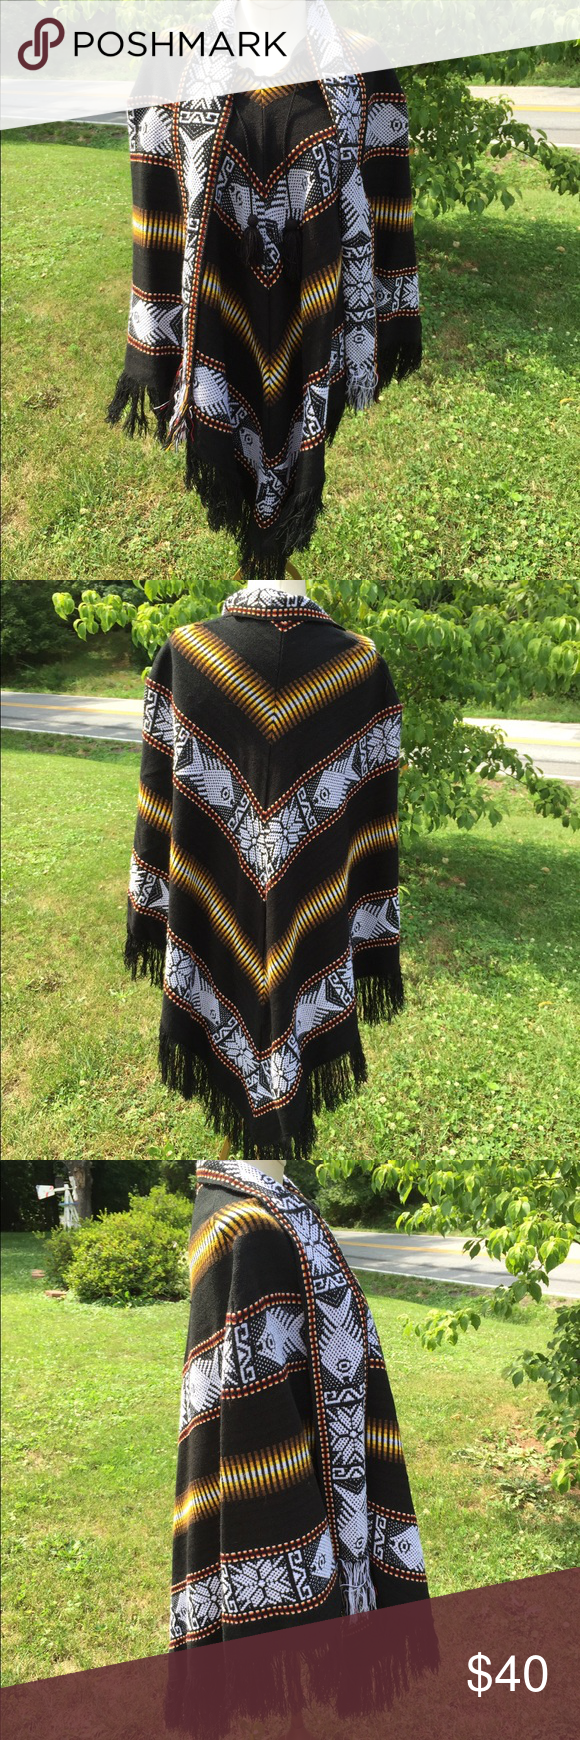 Artesanias Ramos Wool Poncho w/ Attached Scarf Very good clean condition.  One size fits all. Pull over Poncho. Artesanias Ramos Sweaters Shrugs & Ponchos